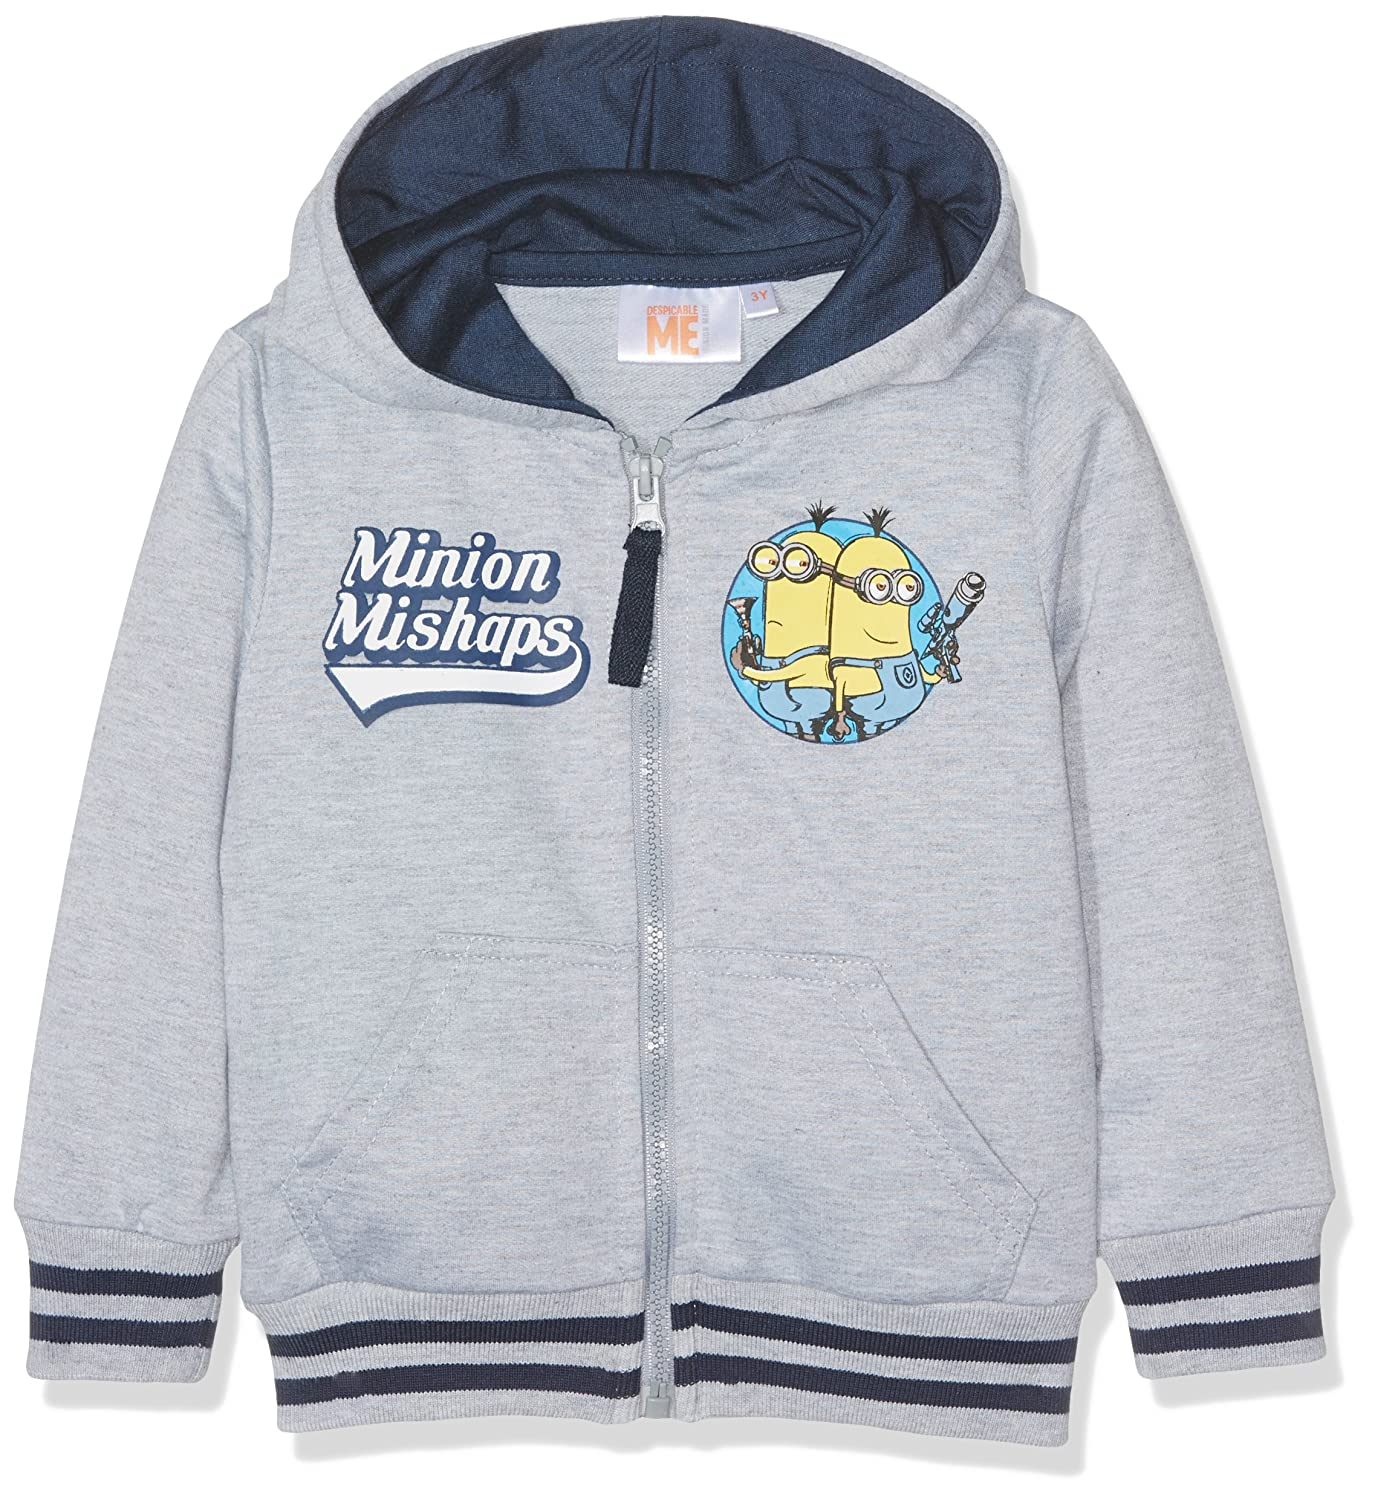 Minions Despicable Me Welcome to Paradise Hooded Sweater Jumper New 2018